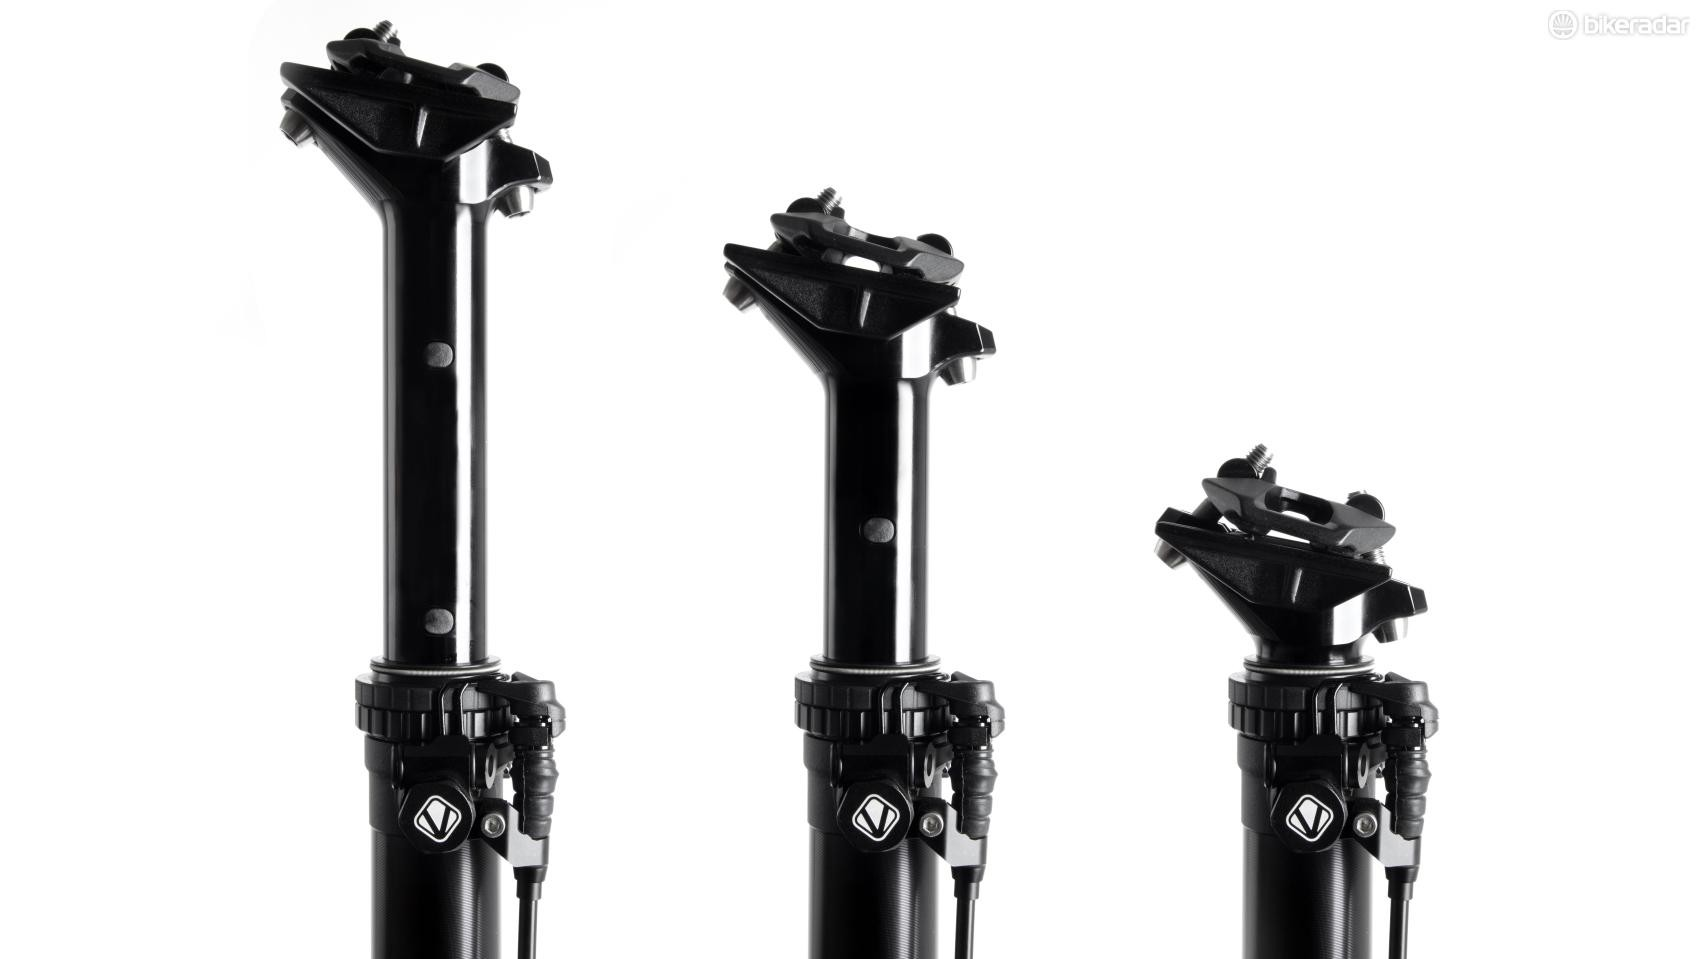 Vecnum claims the moveLOC is the lightest dropper post in the world